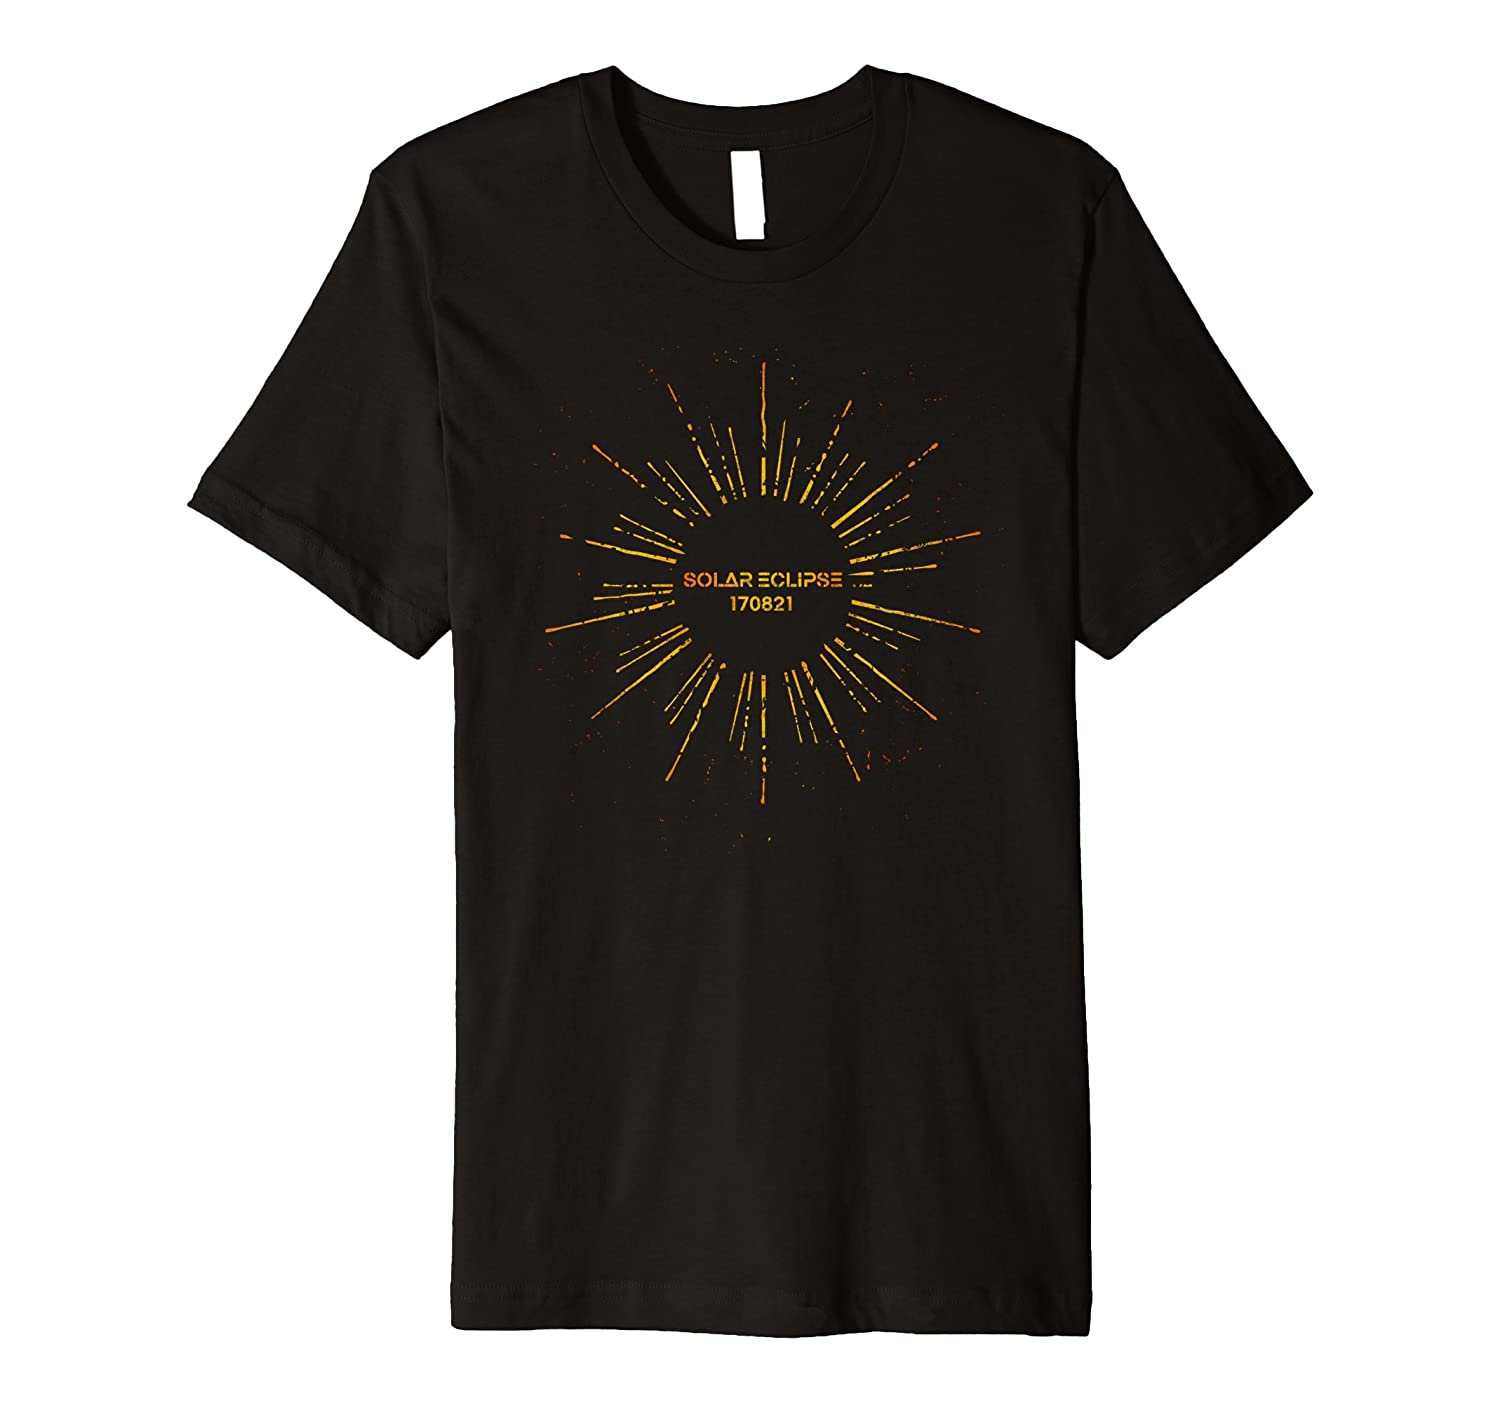 TWO SIDED - Total Solar Eclipse Tour T Shirt-BN